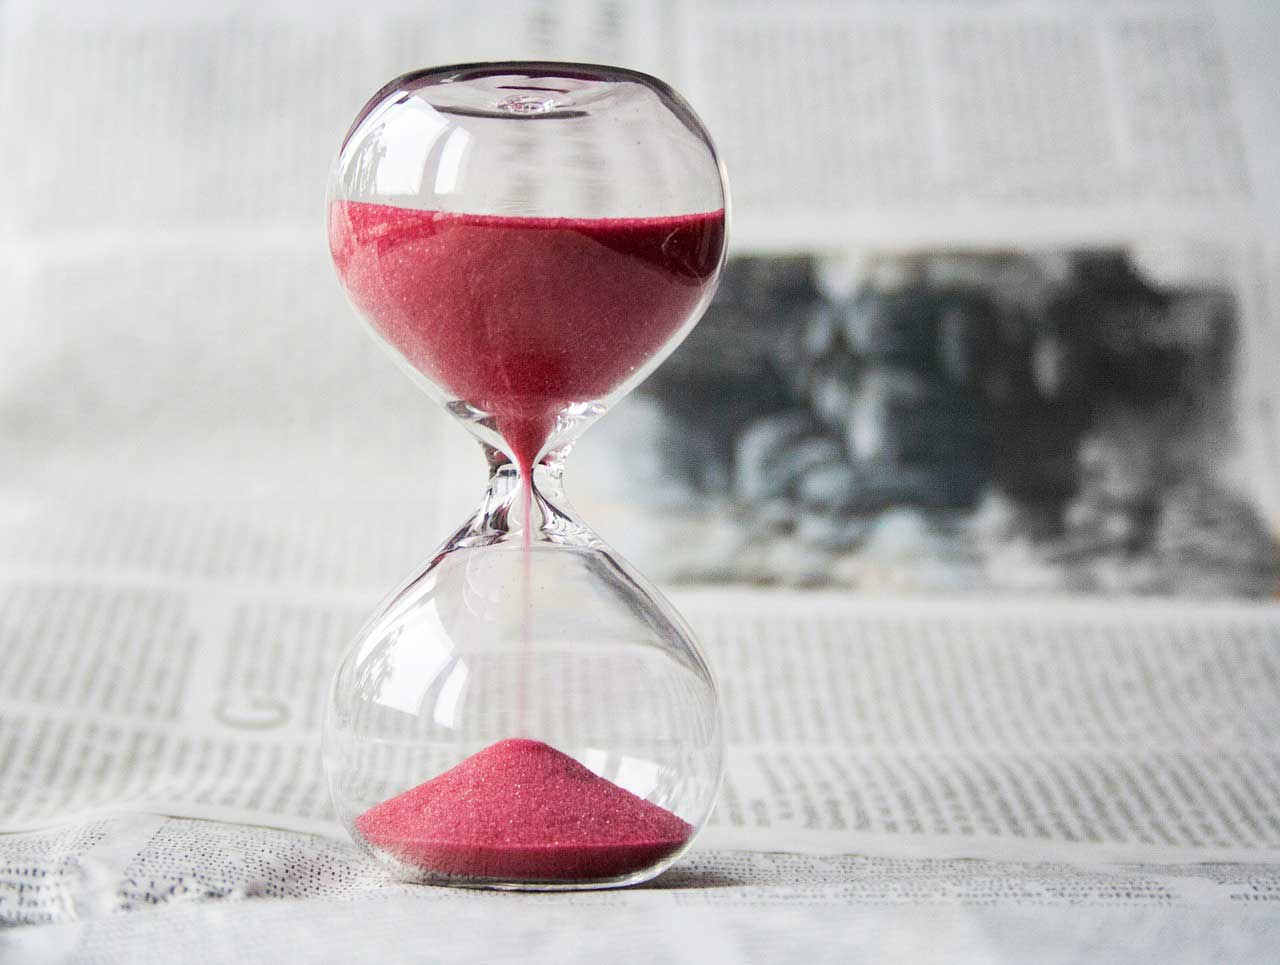 Urgency is widely used across marketing campaigns to increase conversions